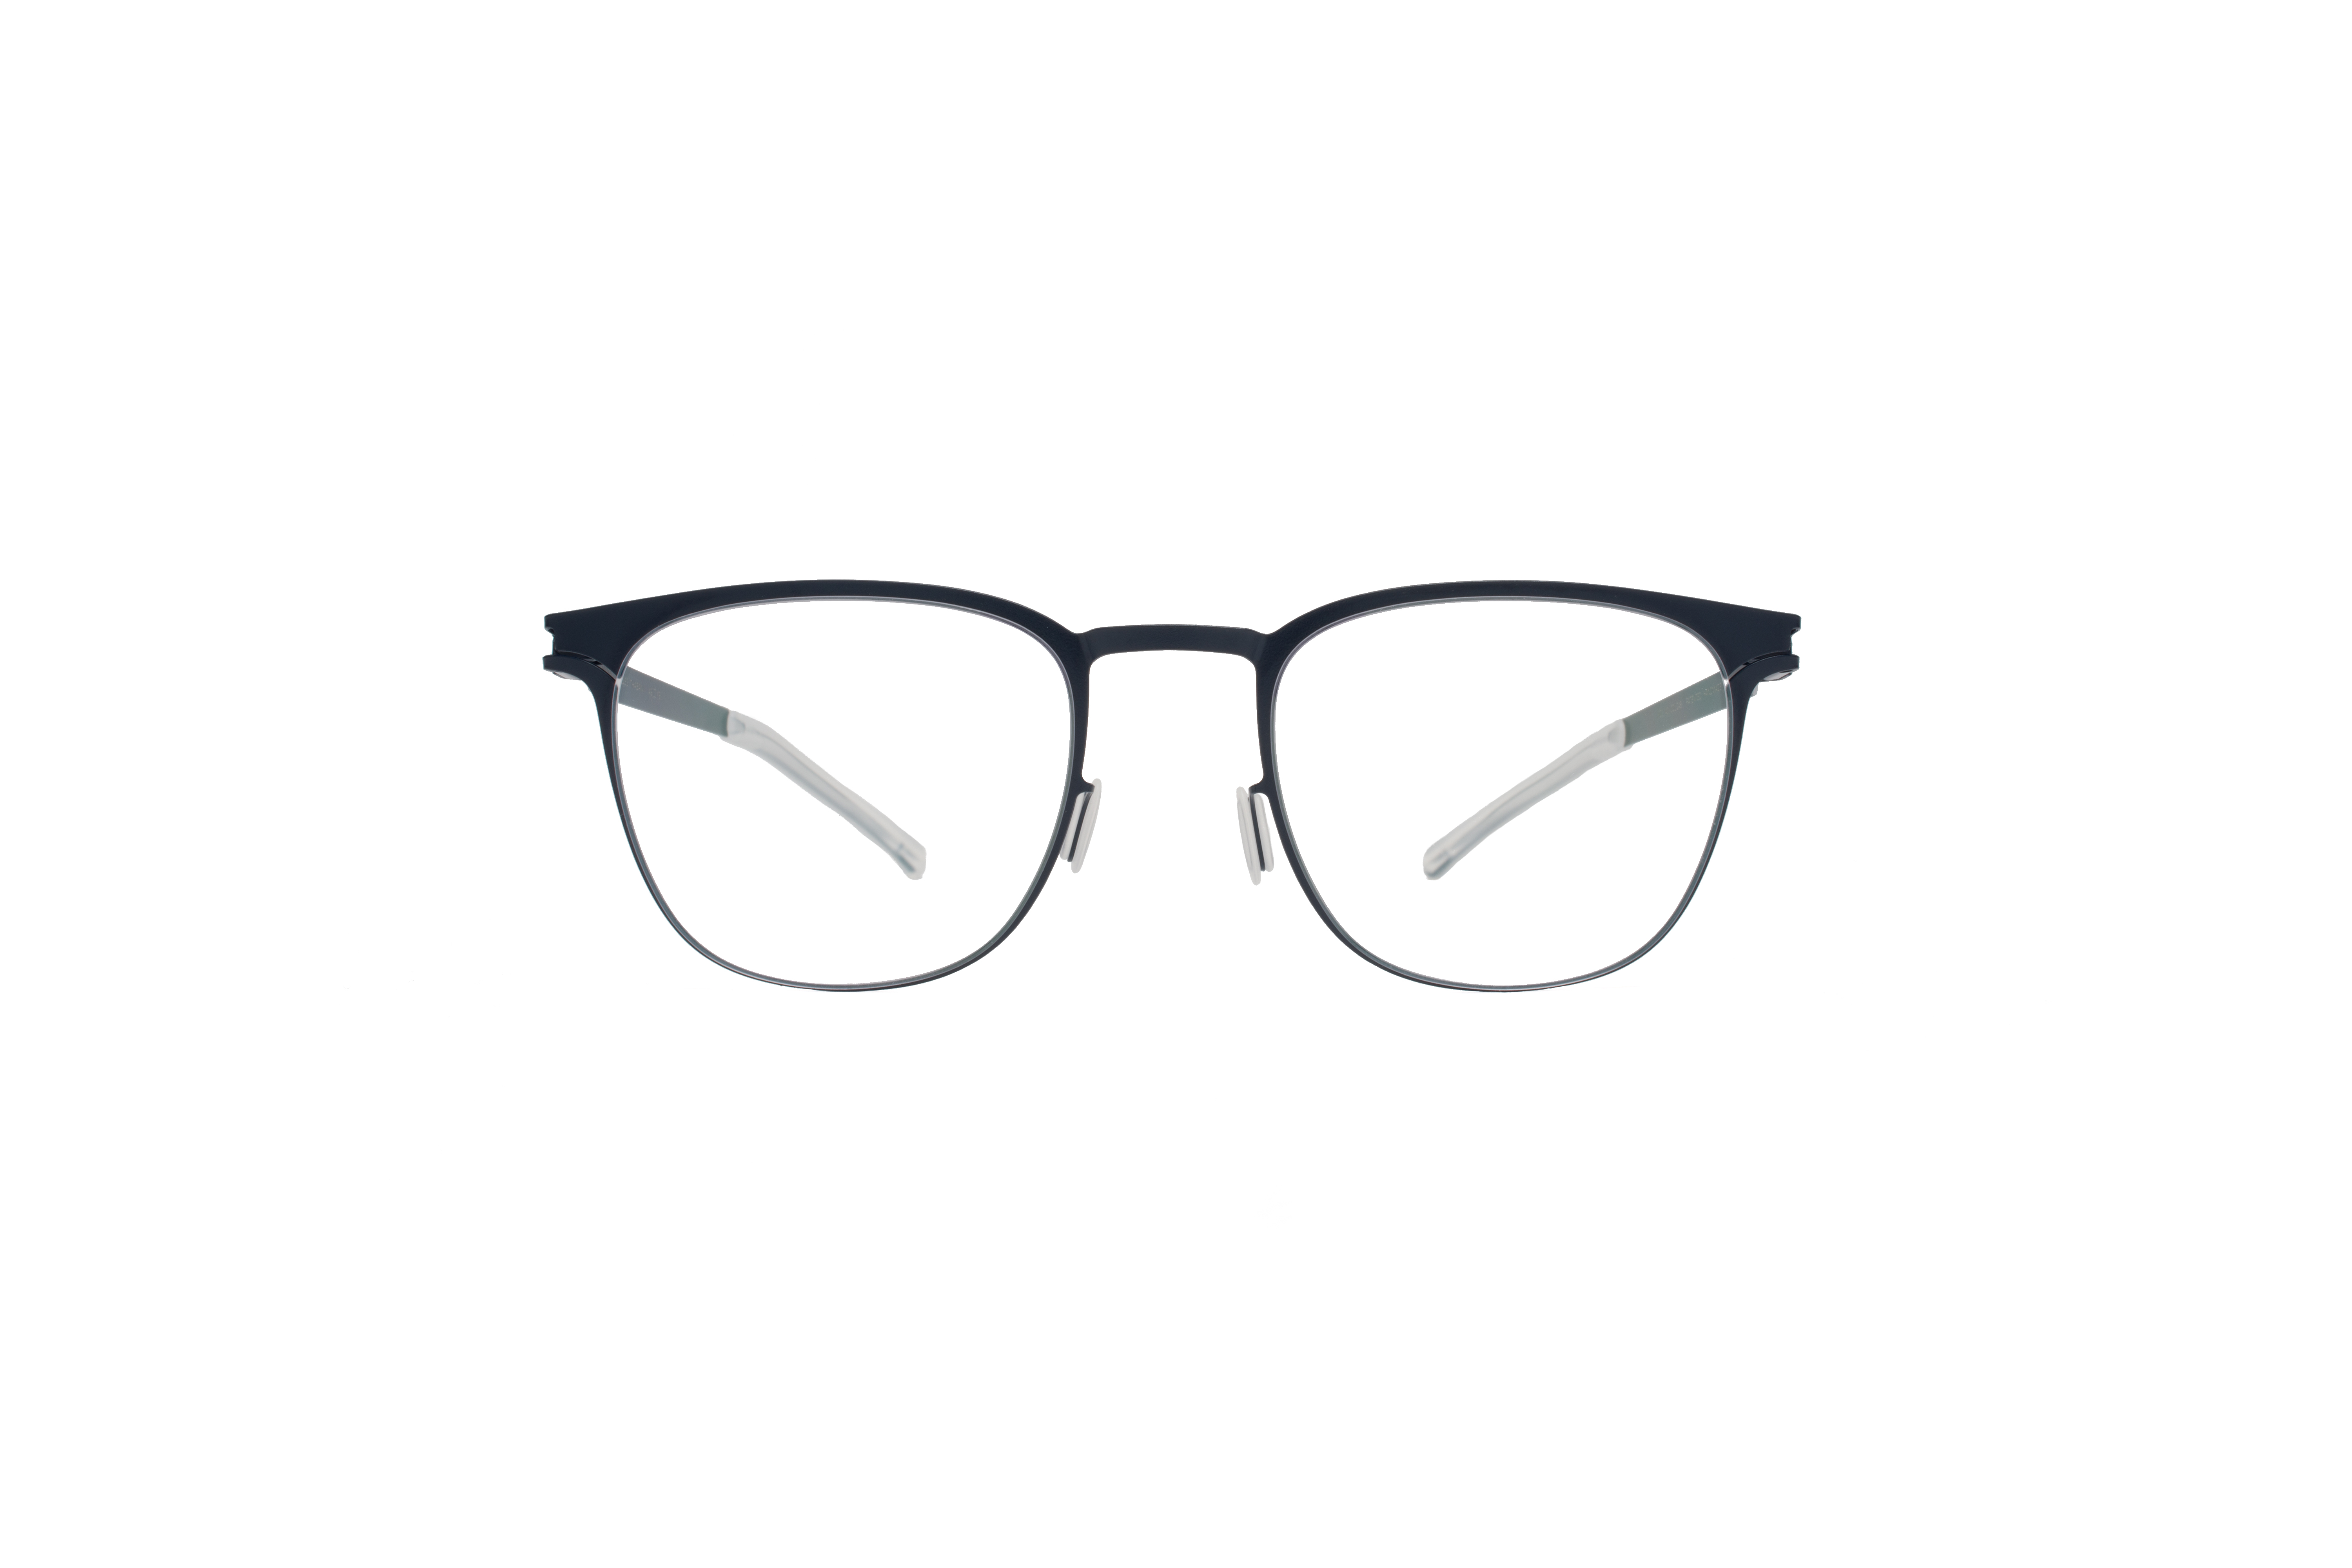 MYKITA Decades Rx Thabani Nightsky Clear P5723549e64b4f